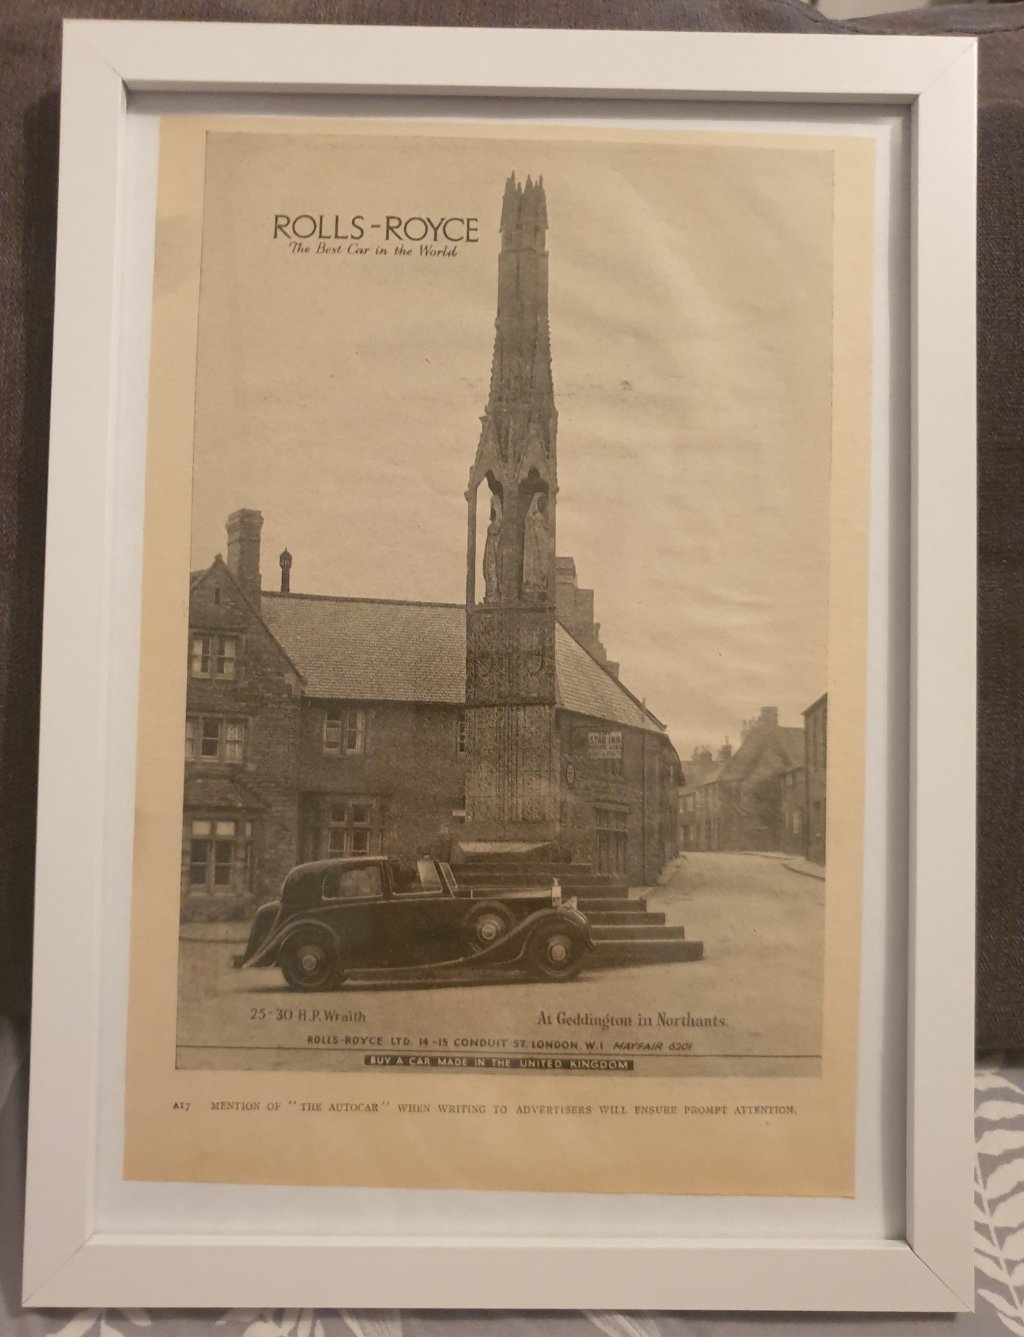 1971 Original 1939 Rolls-Royce Wraith Framed Advert  For Sale (picture 1 of 3)